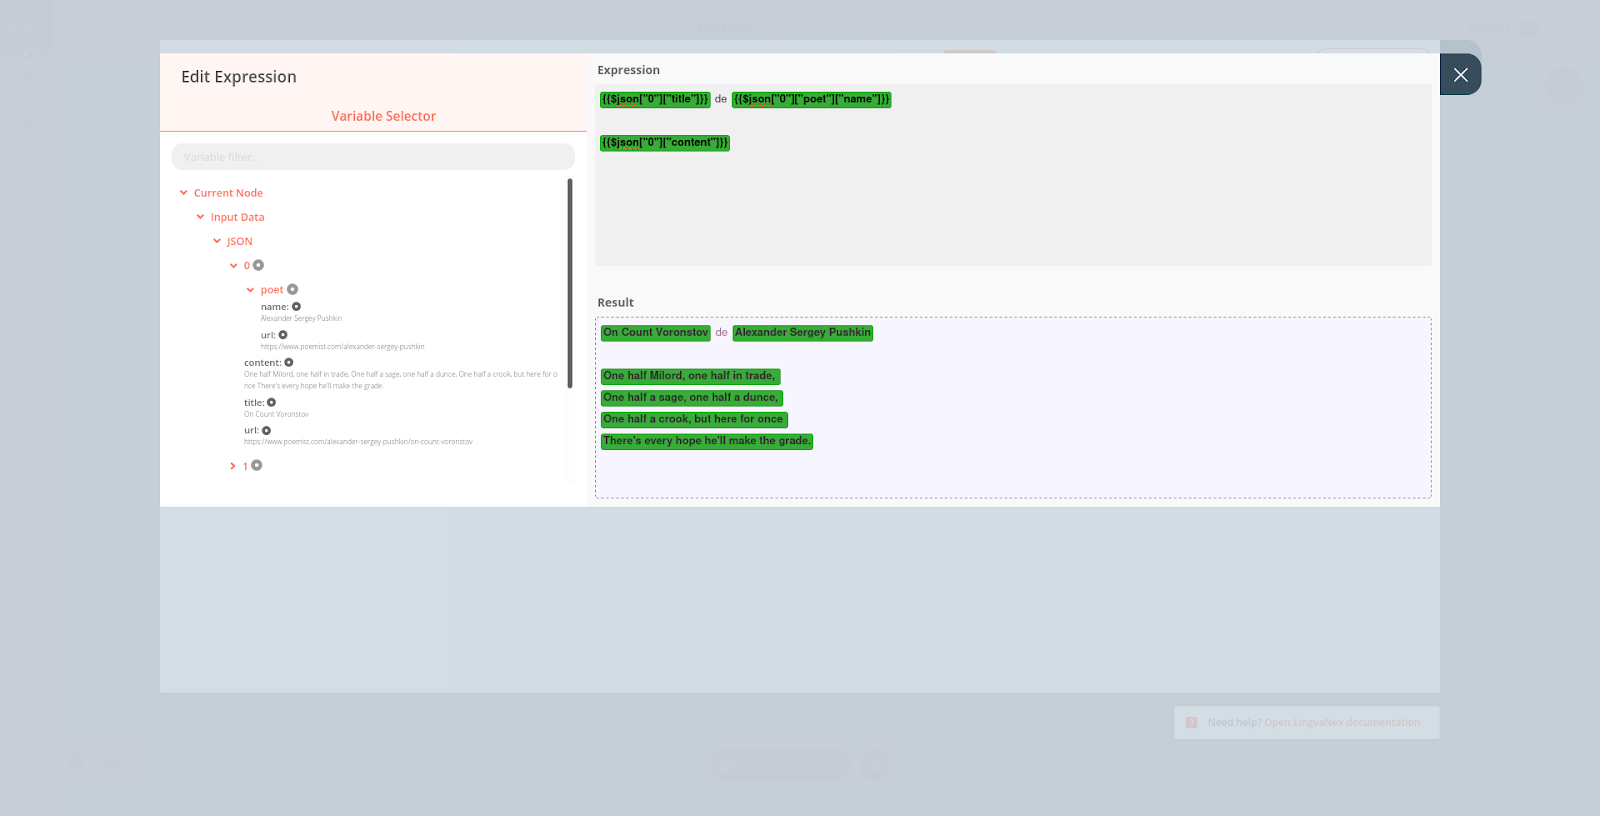 n8n Editor UI showing the expression setting for the LingvaNex node